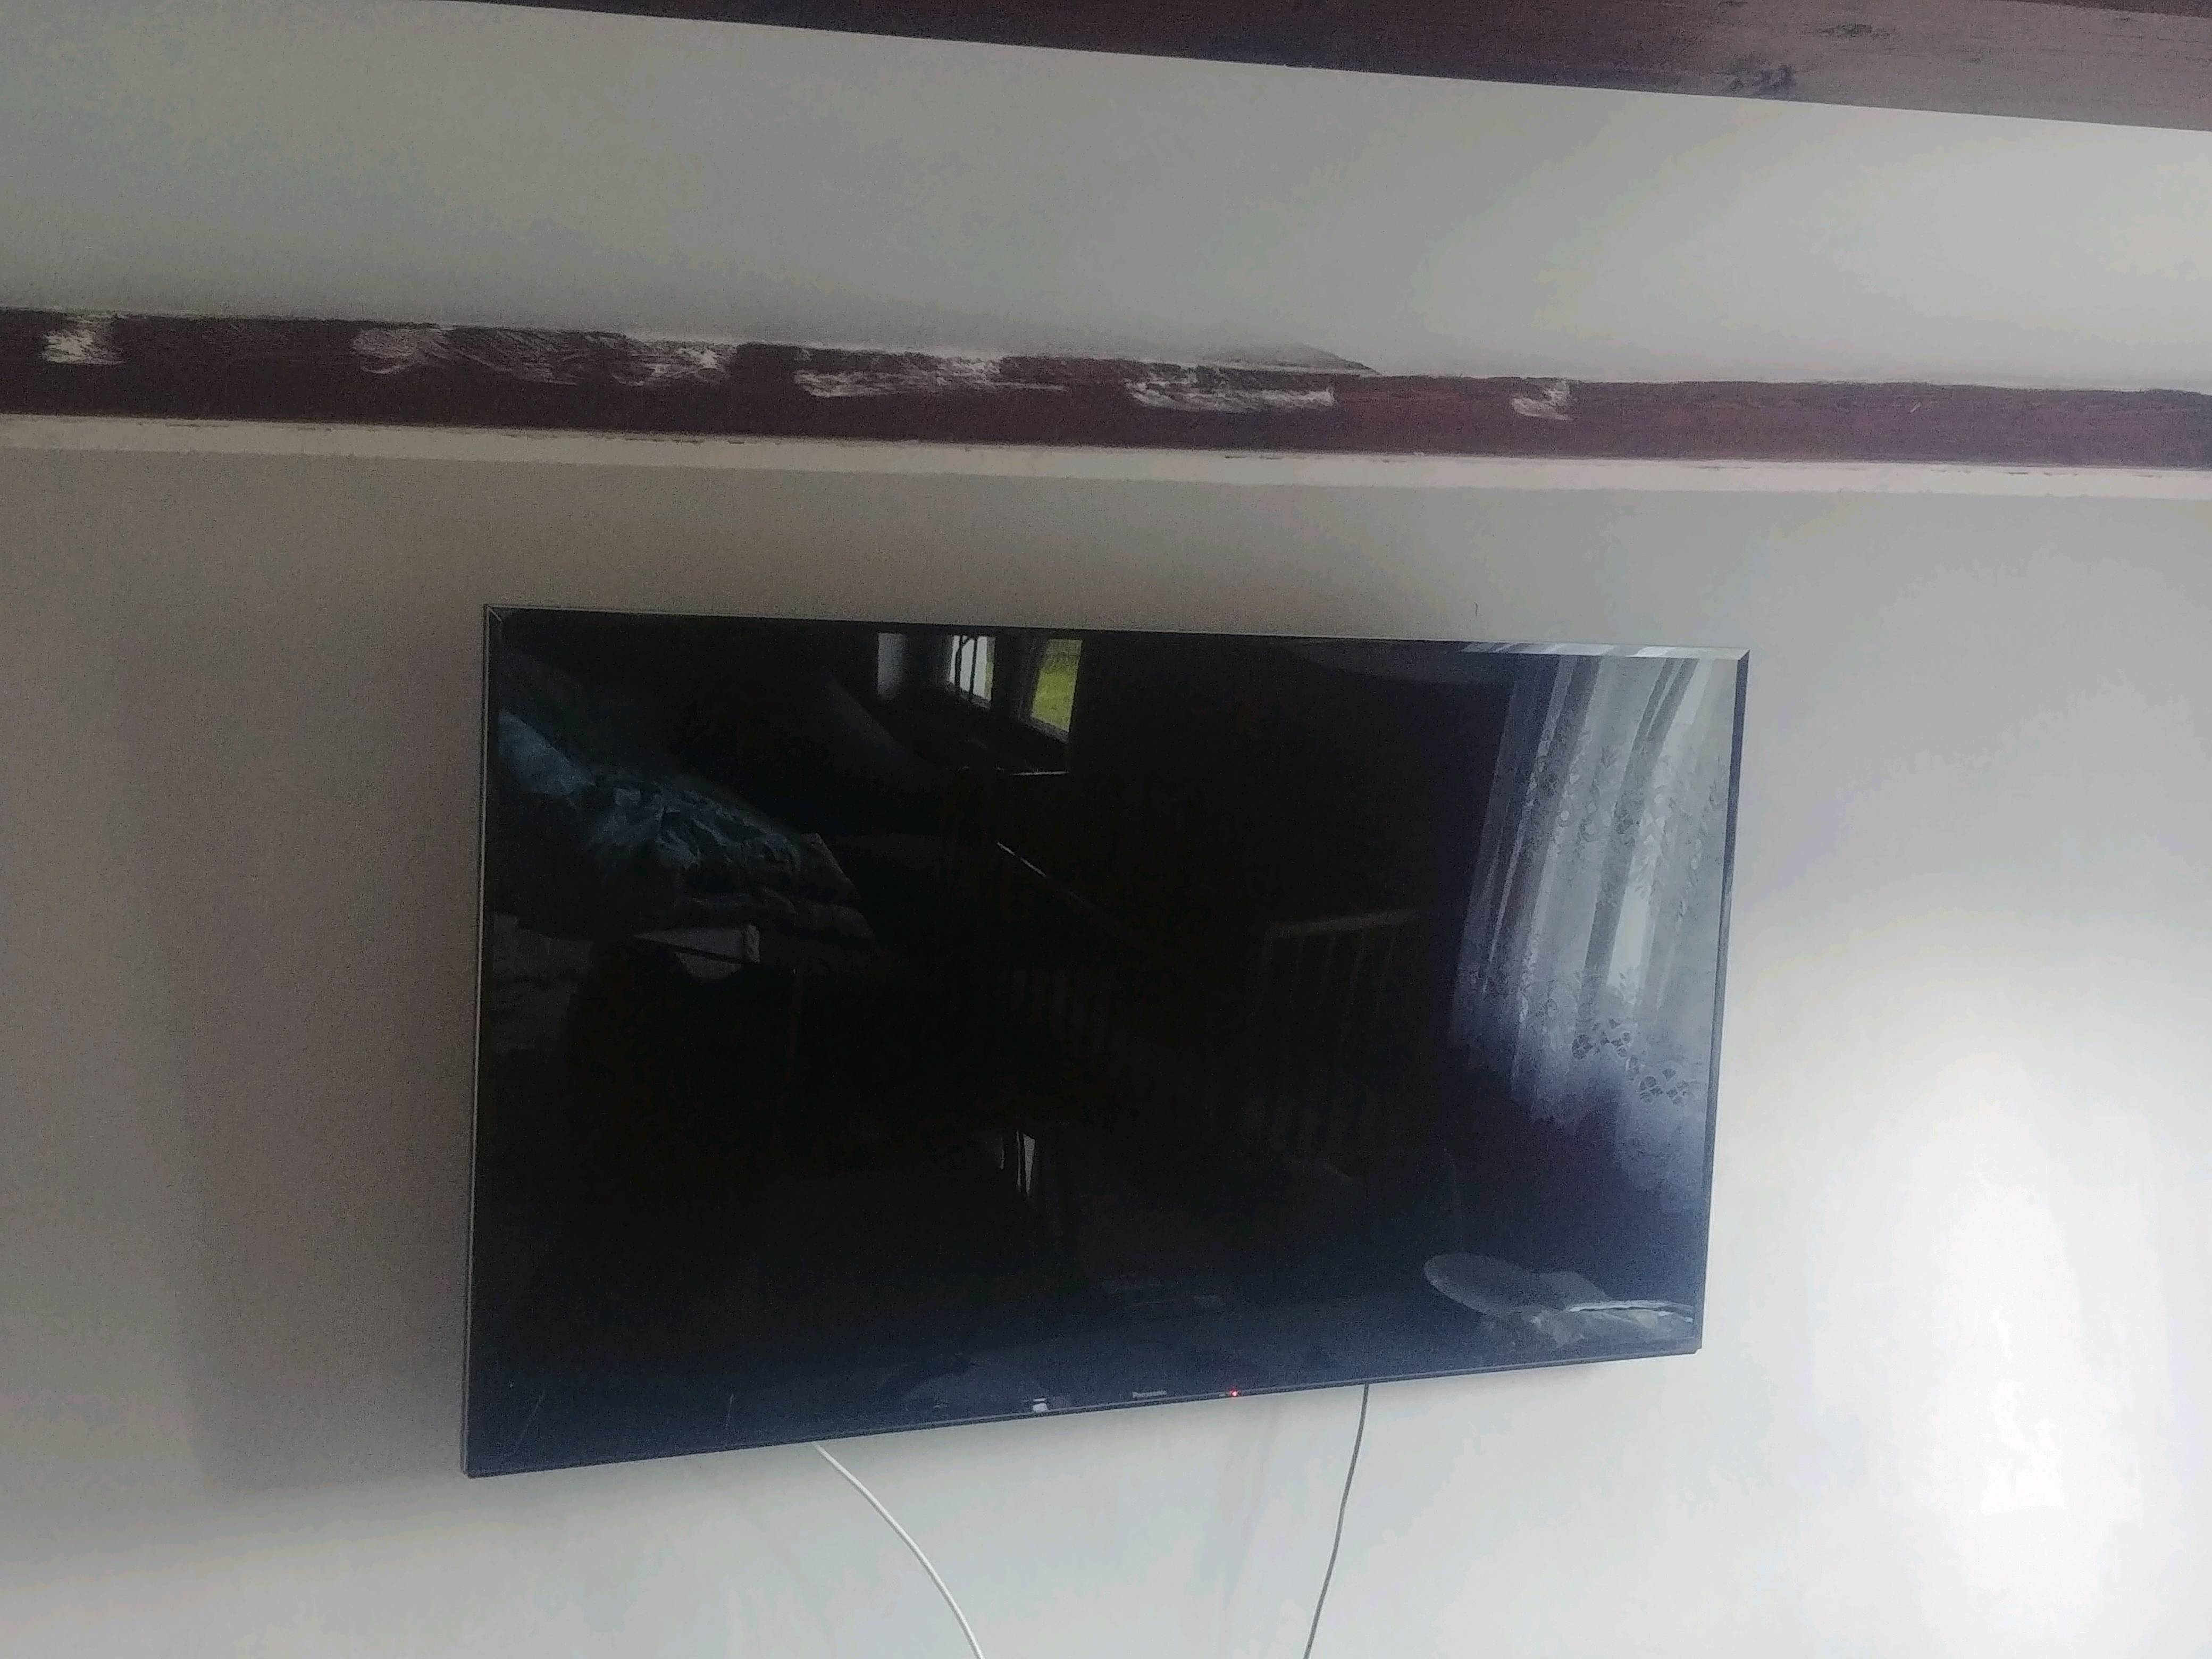 LED Smart 4K TV Panasonic TX-65EX603E